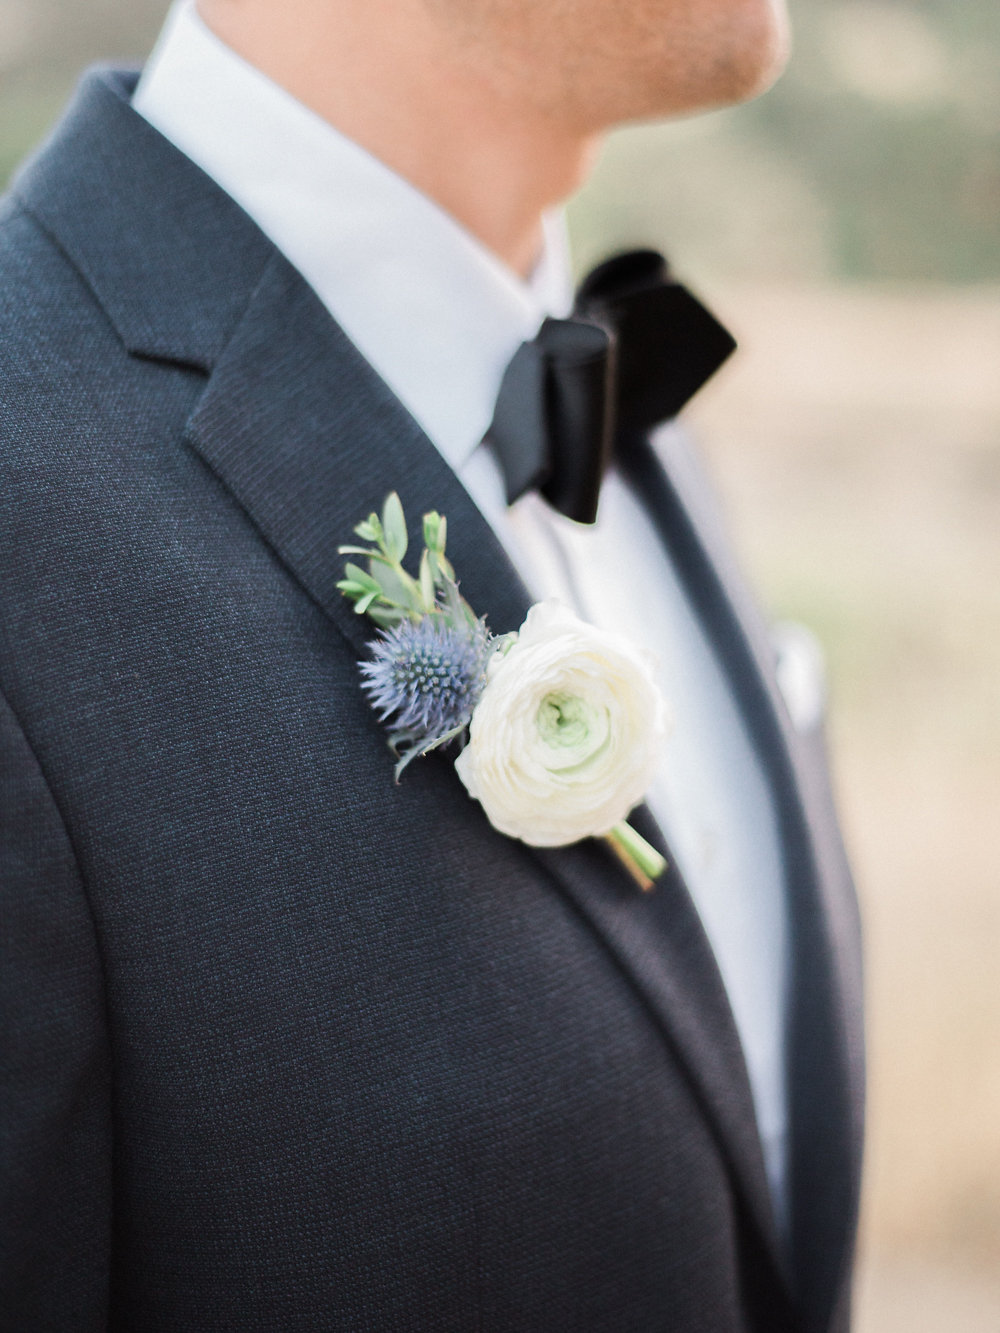 ranunculus boutonnieres - photo by Anya Kernes Photography http://ruffledblog.com/organic-wedding-inspiration-with-shades-of-blue